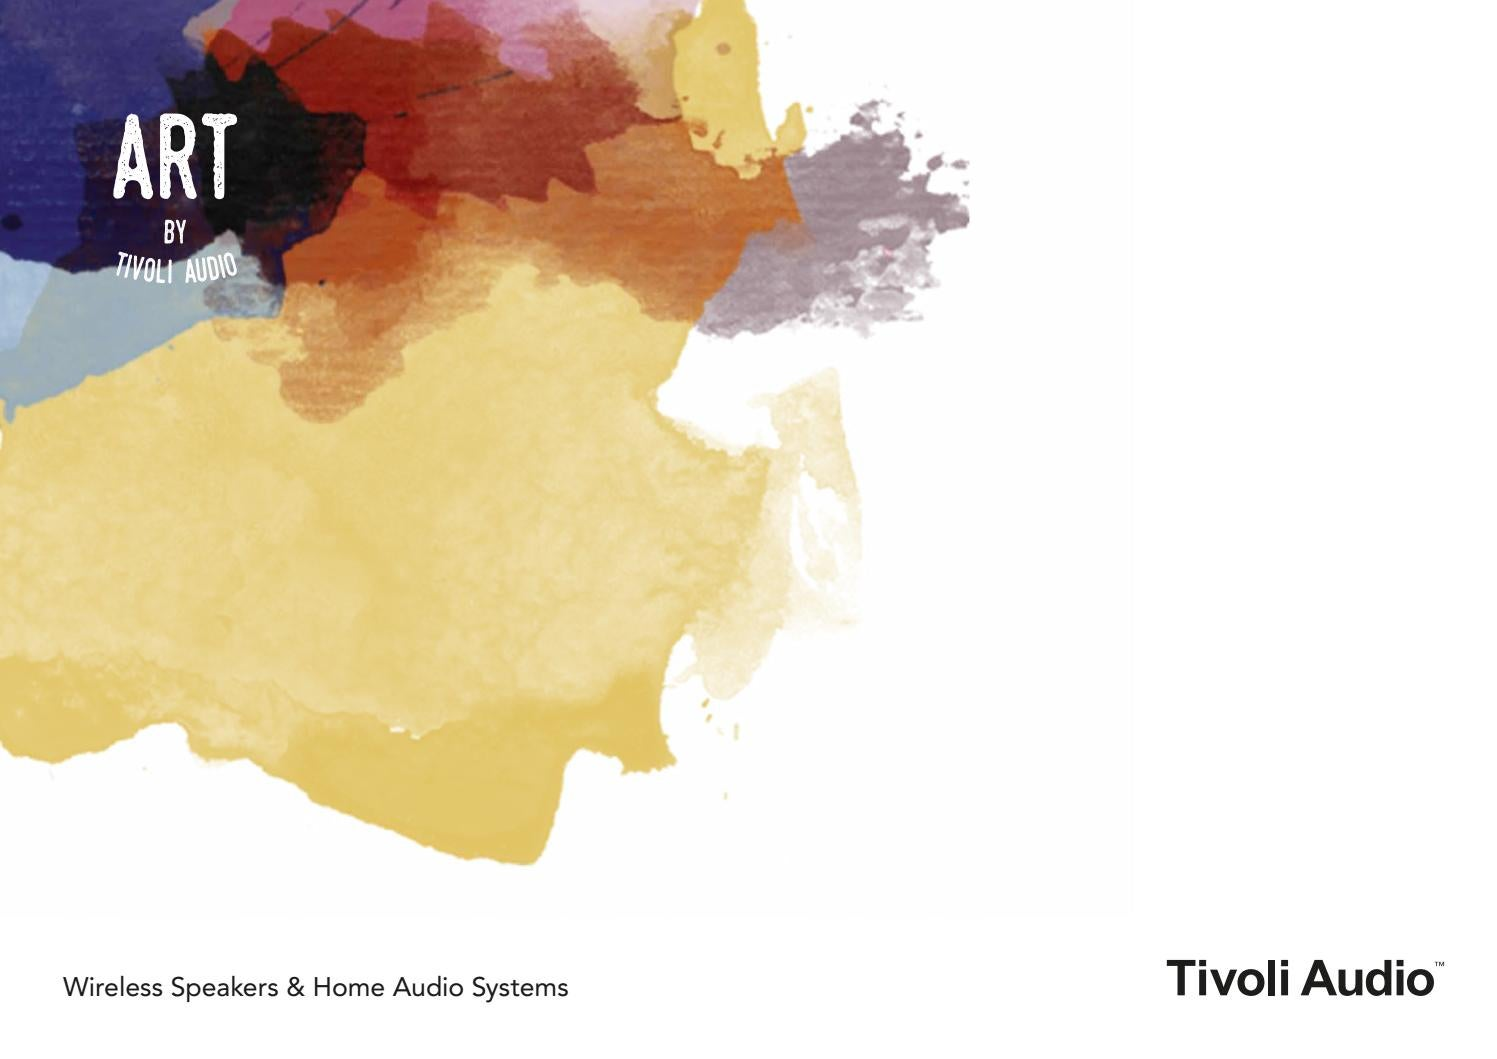 Tivoli Audio Yellow Tivoli Audio Brochure Art Collection By Vanmokum Issuu